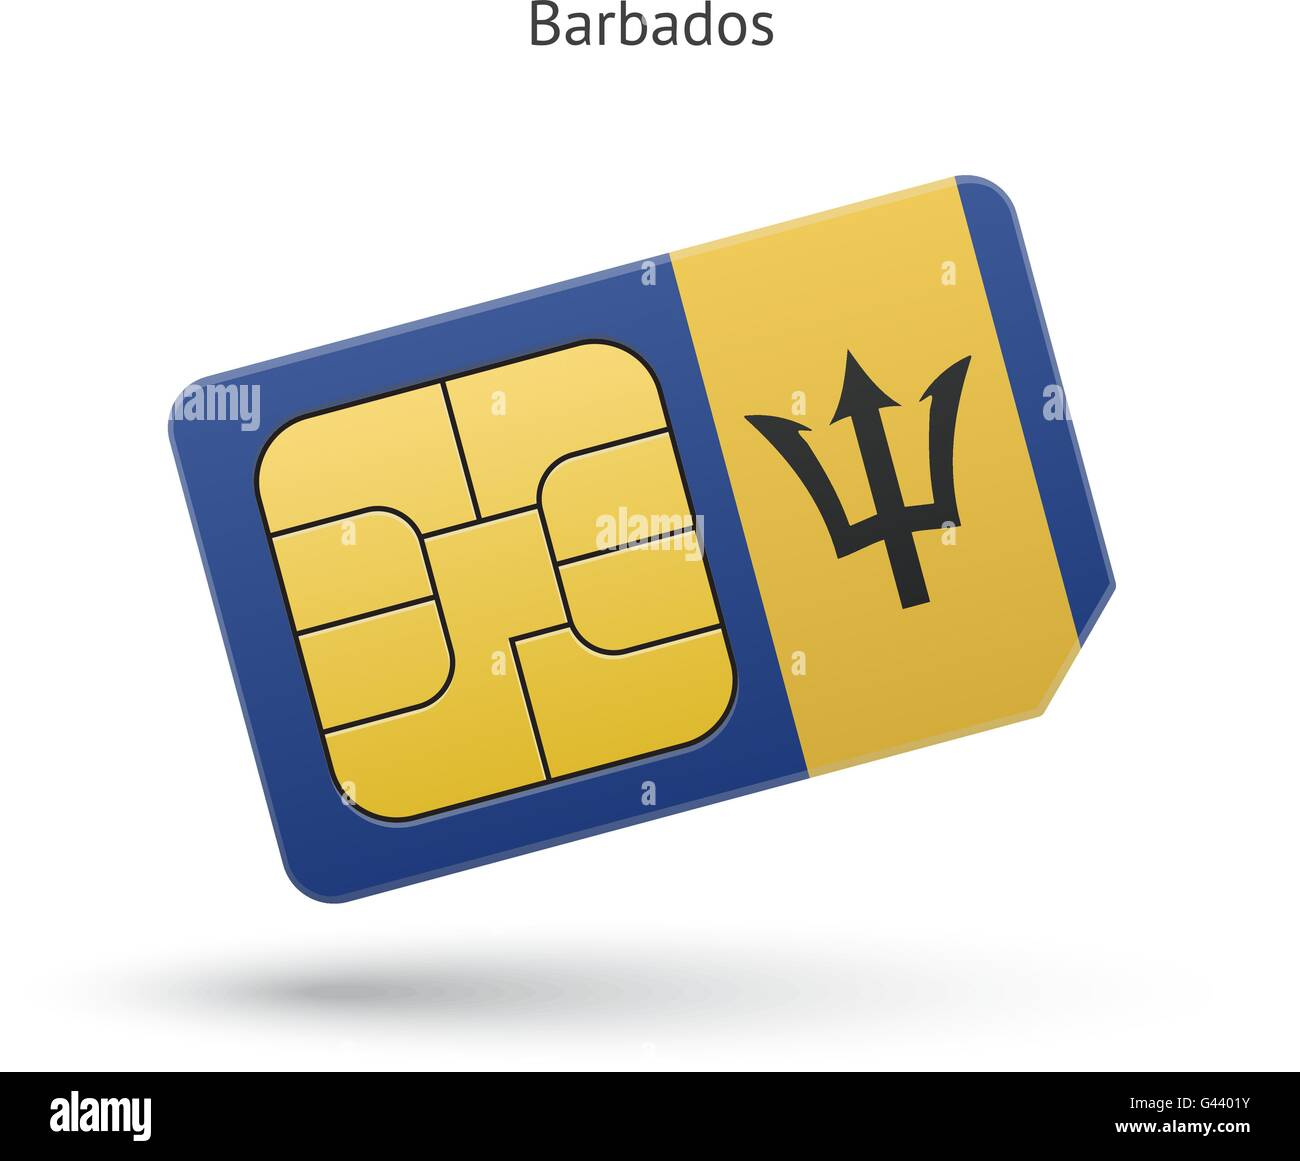 National Symbols Flag Barbados Stock Vector Images Alamy